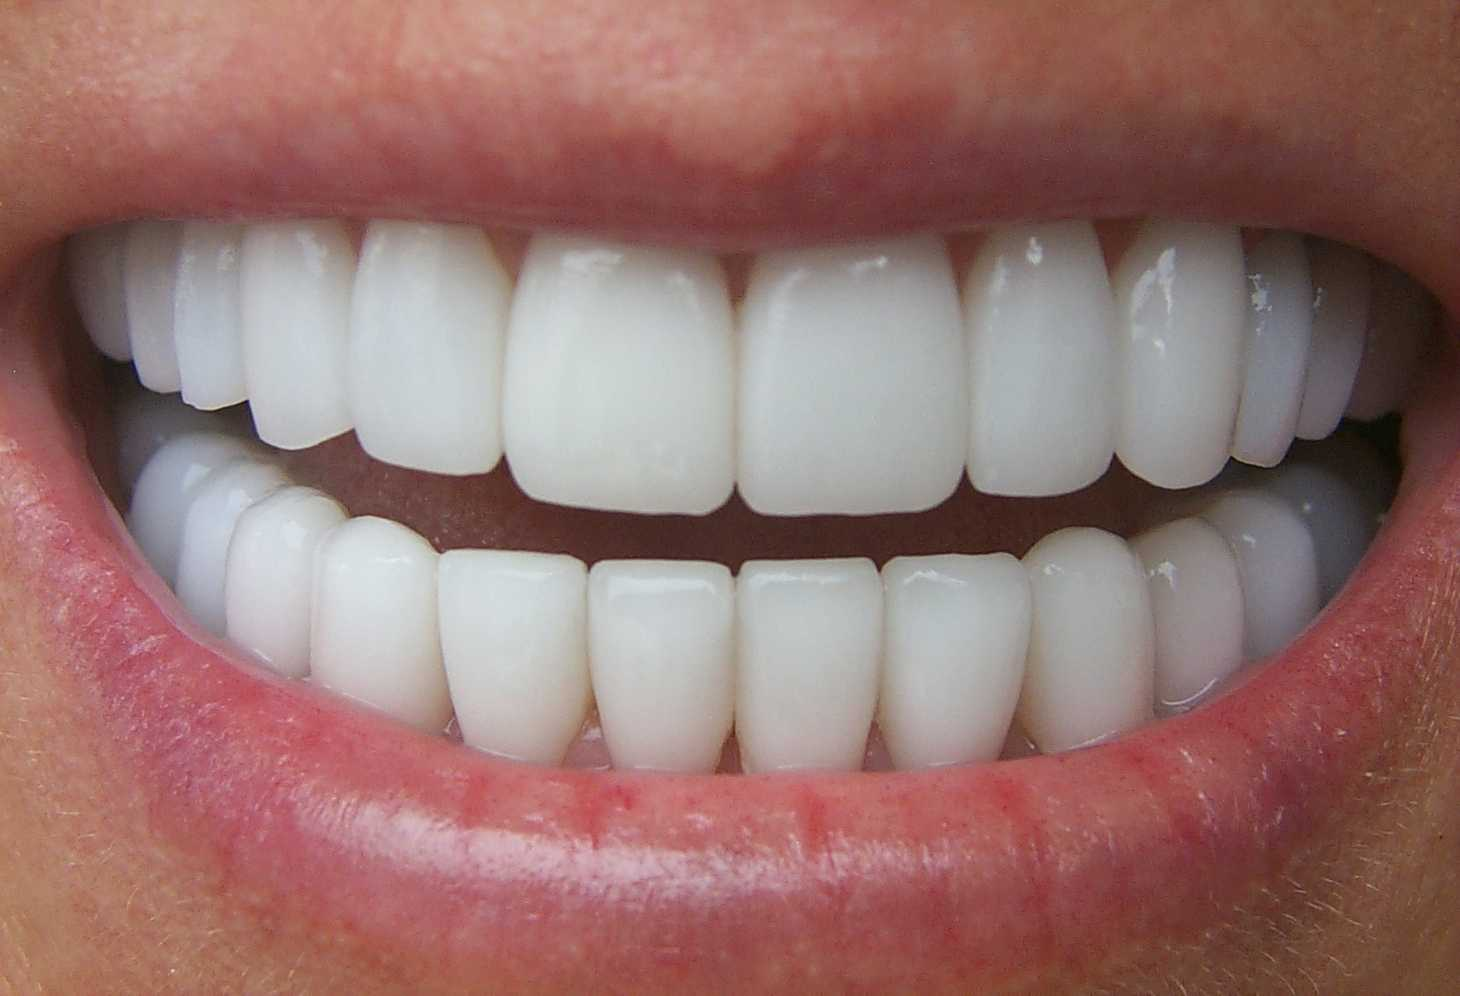 Porcelain veneers southport 10 dental a veneer is a thin tooth coloured shell which is carefully crafted to bond to and cover the front of unsightly teeth a veneer can be likened to a false solutioingenieria Gallery